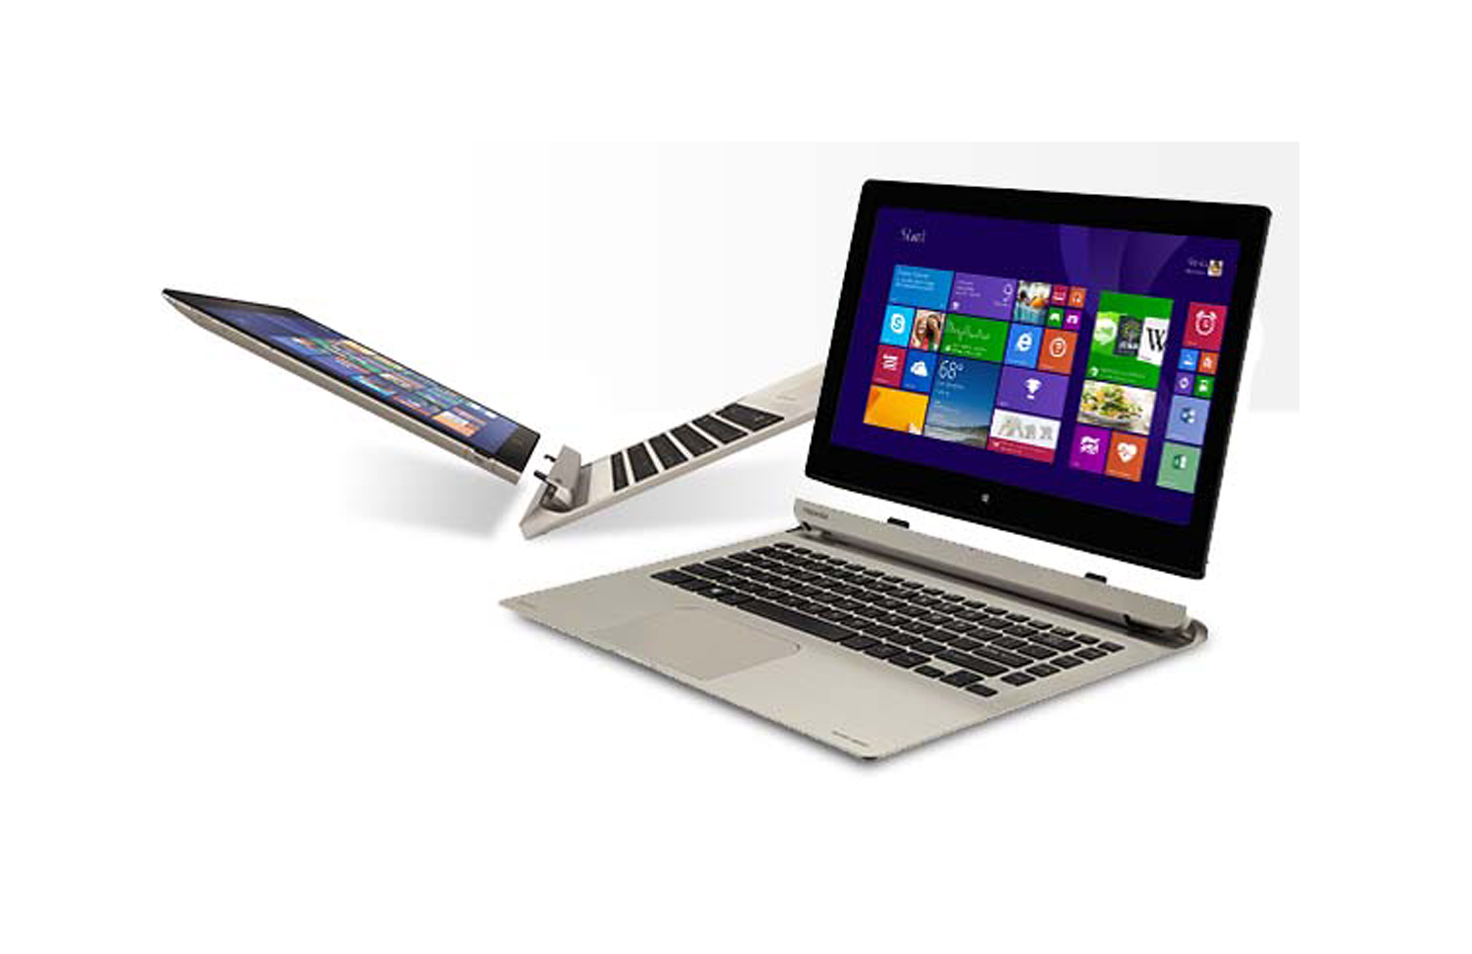 Toshiba Satellite Click 2 Pro: Top 3 Business Features